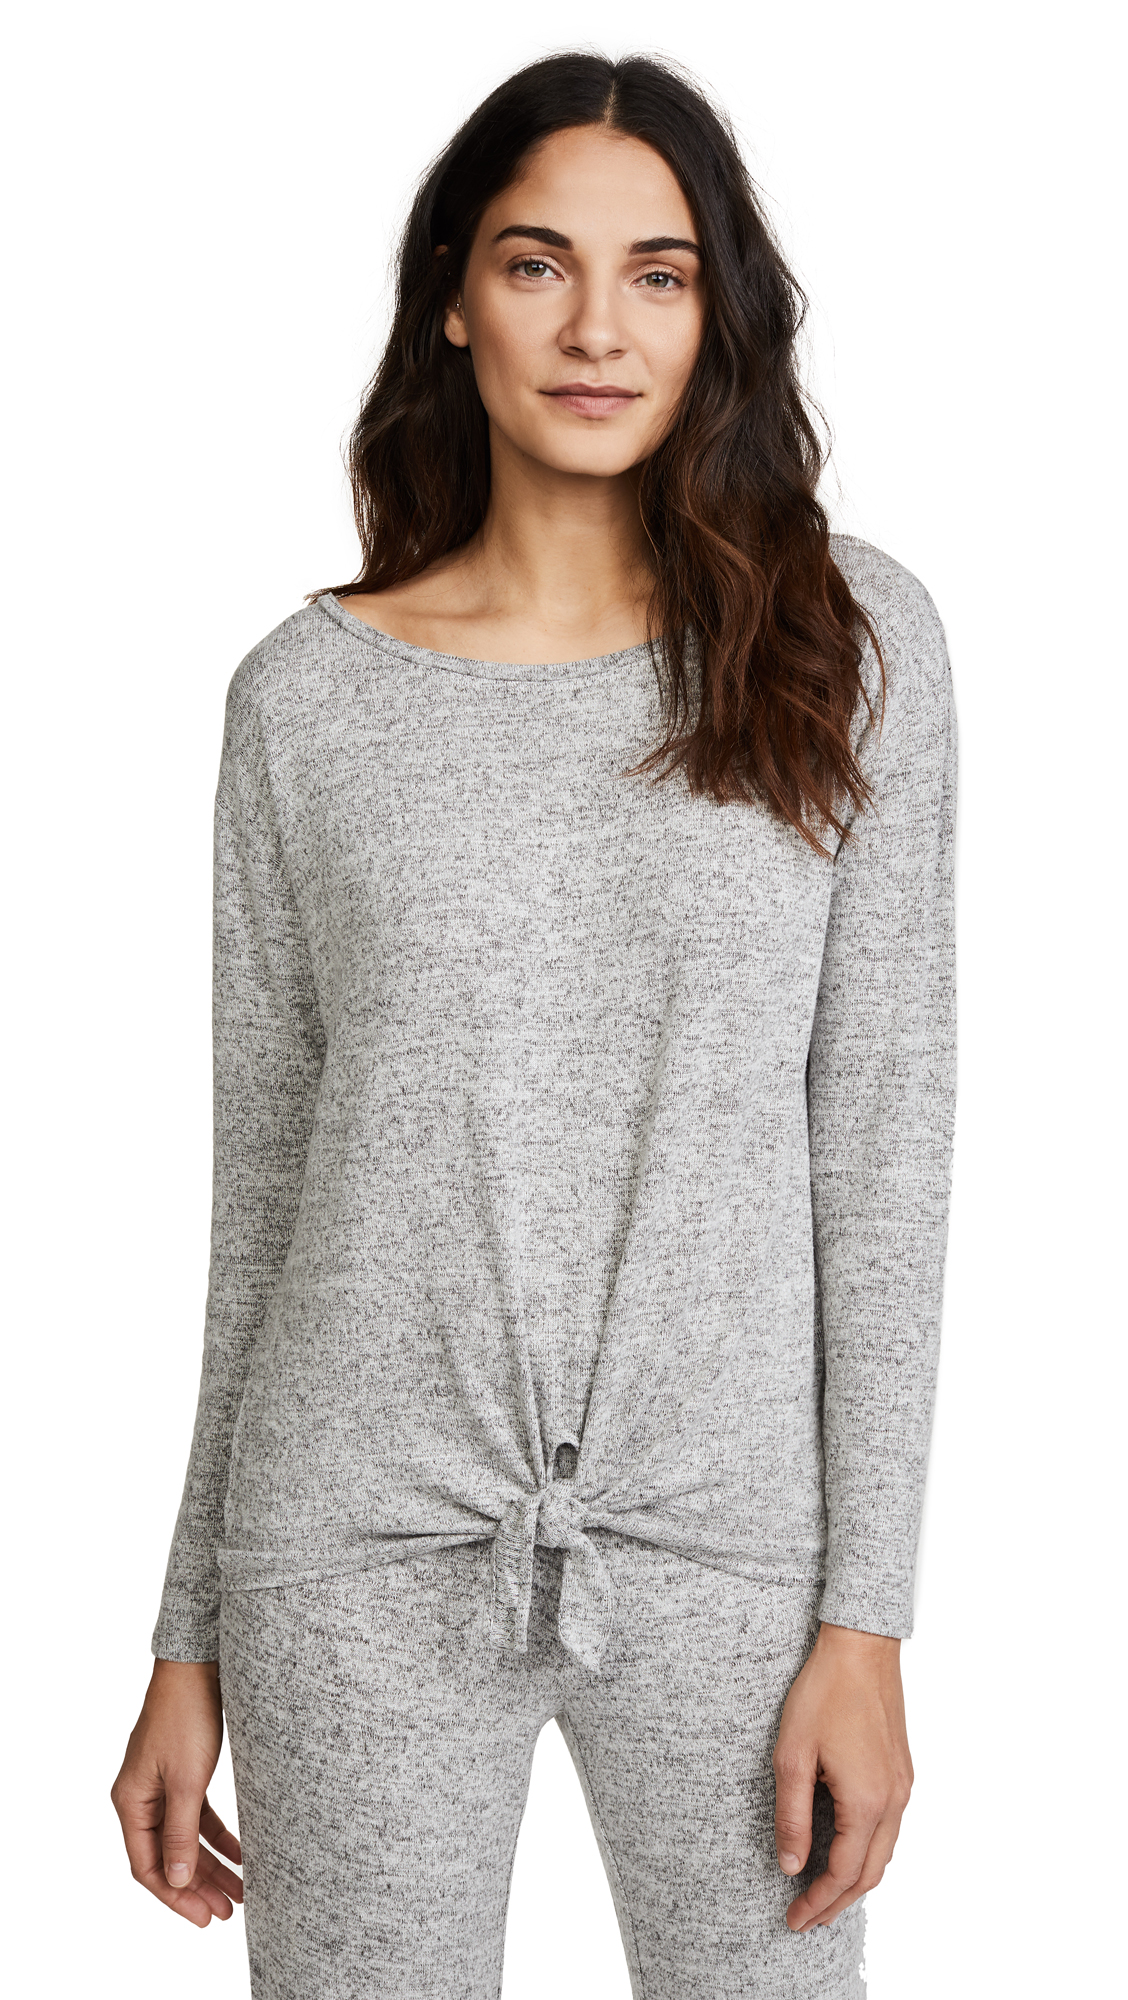 BB Dakota Tie Front Top - Heather Grey